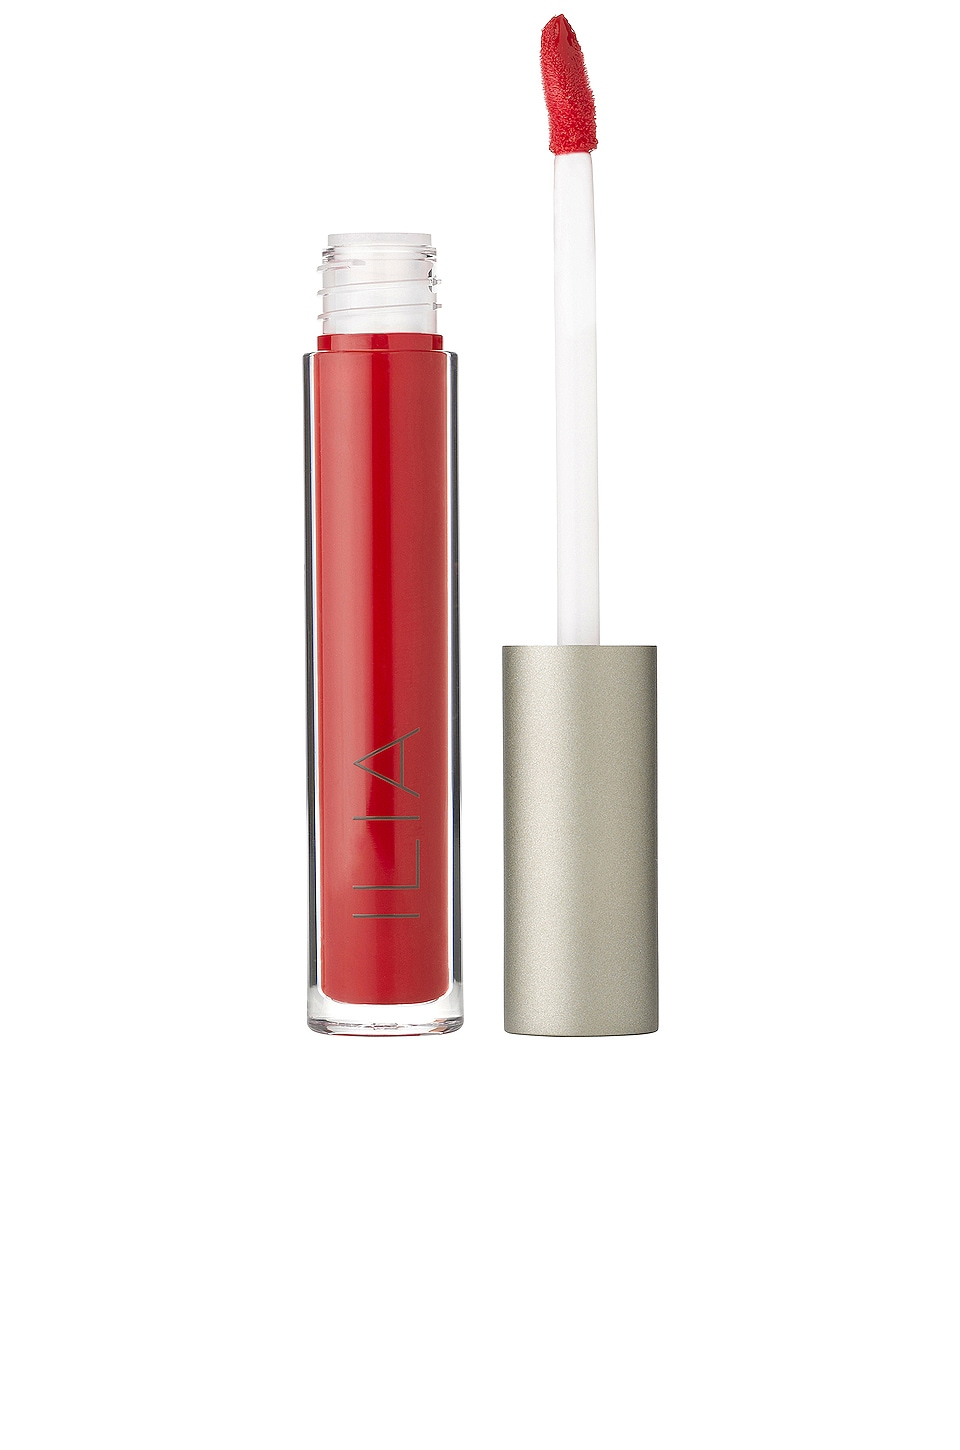 Ilia Lip Gloss in Heartbeat